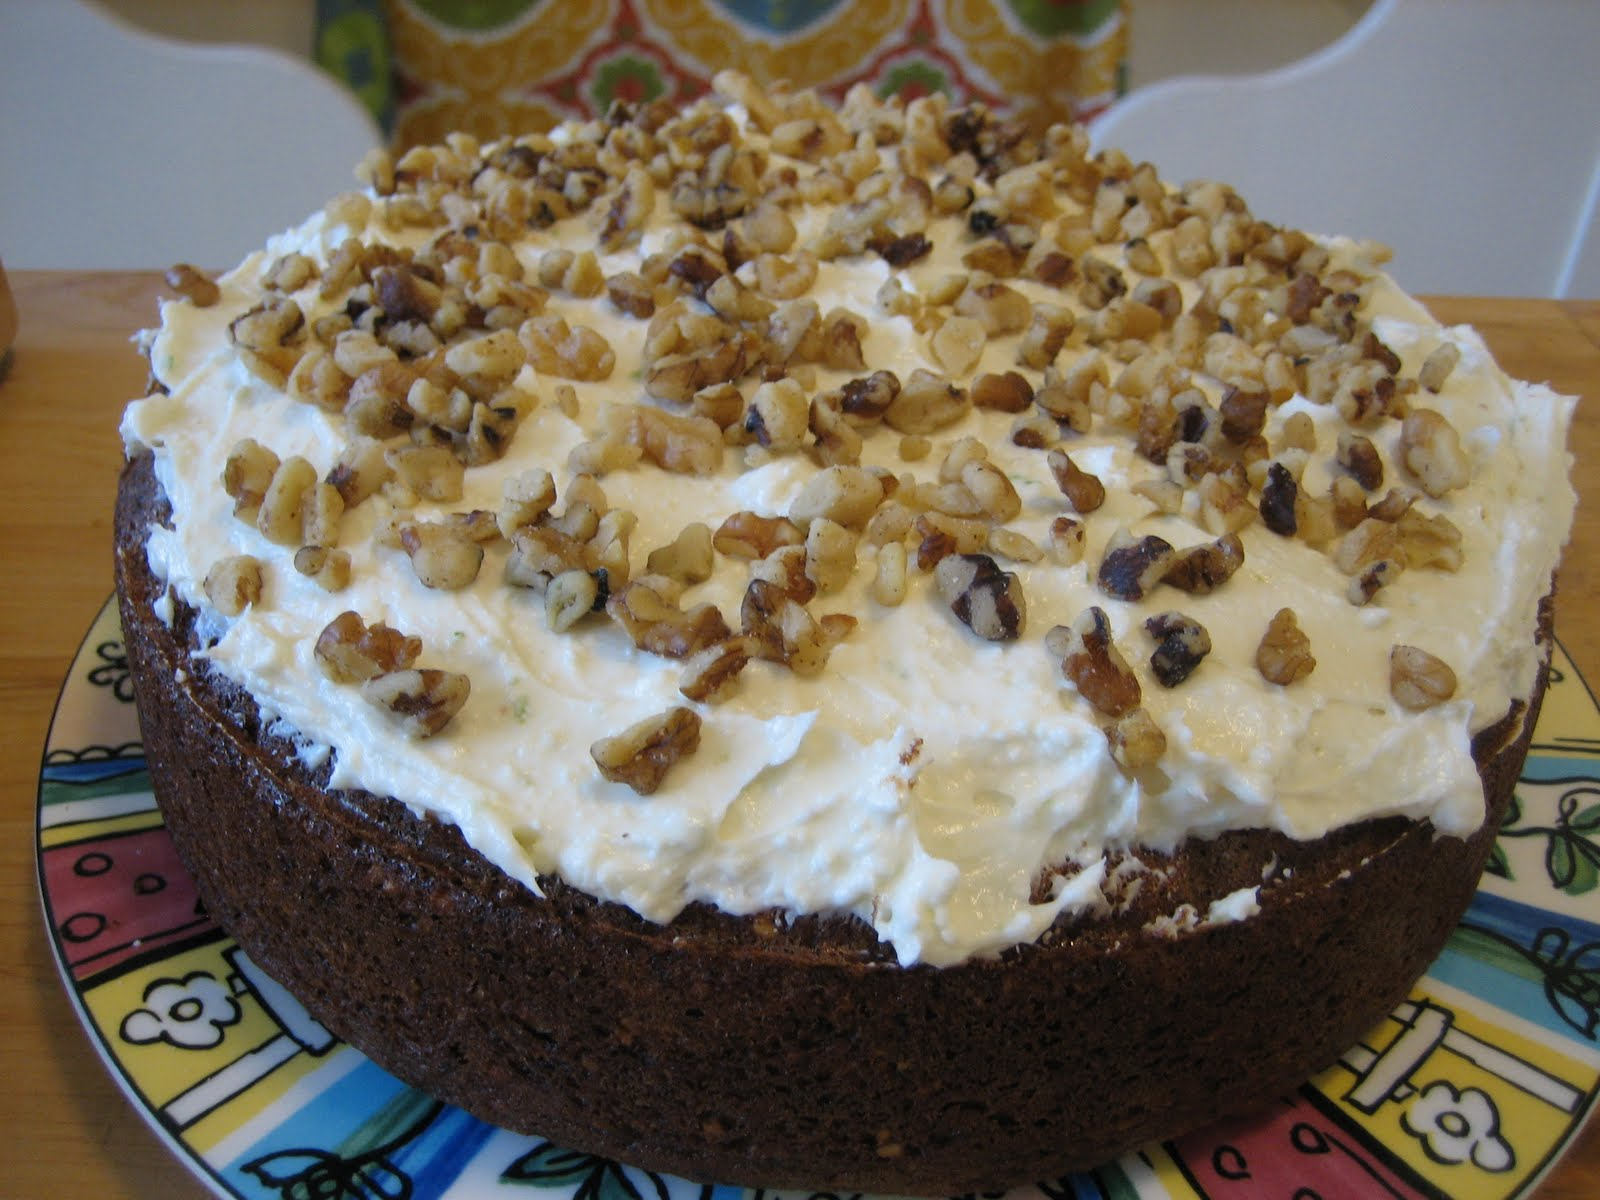 ... Adventures Of Tummy: Homemade Carrot Cake with Lime Mascarpone Icing